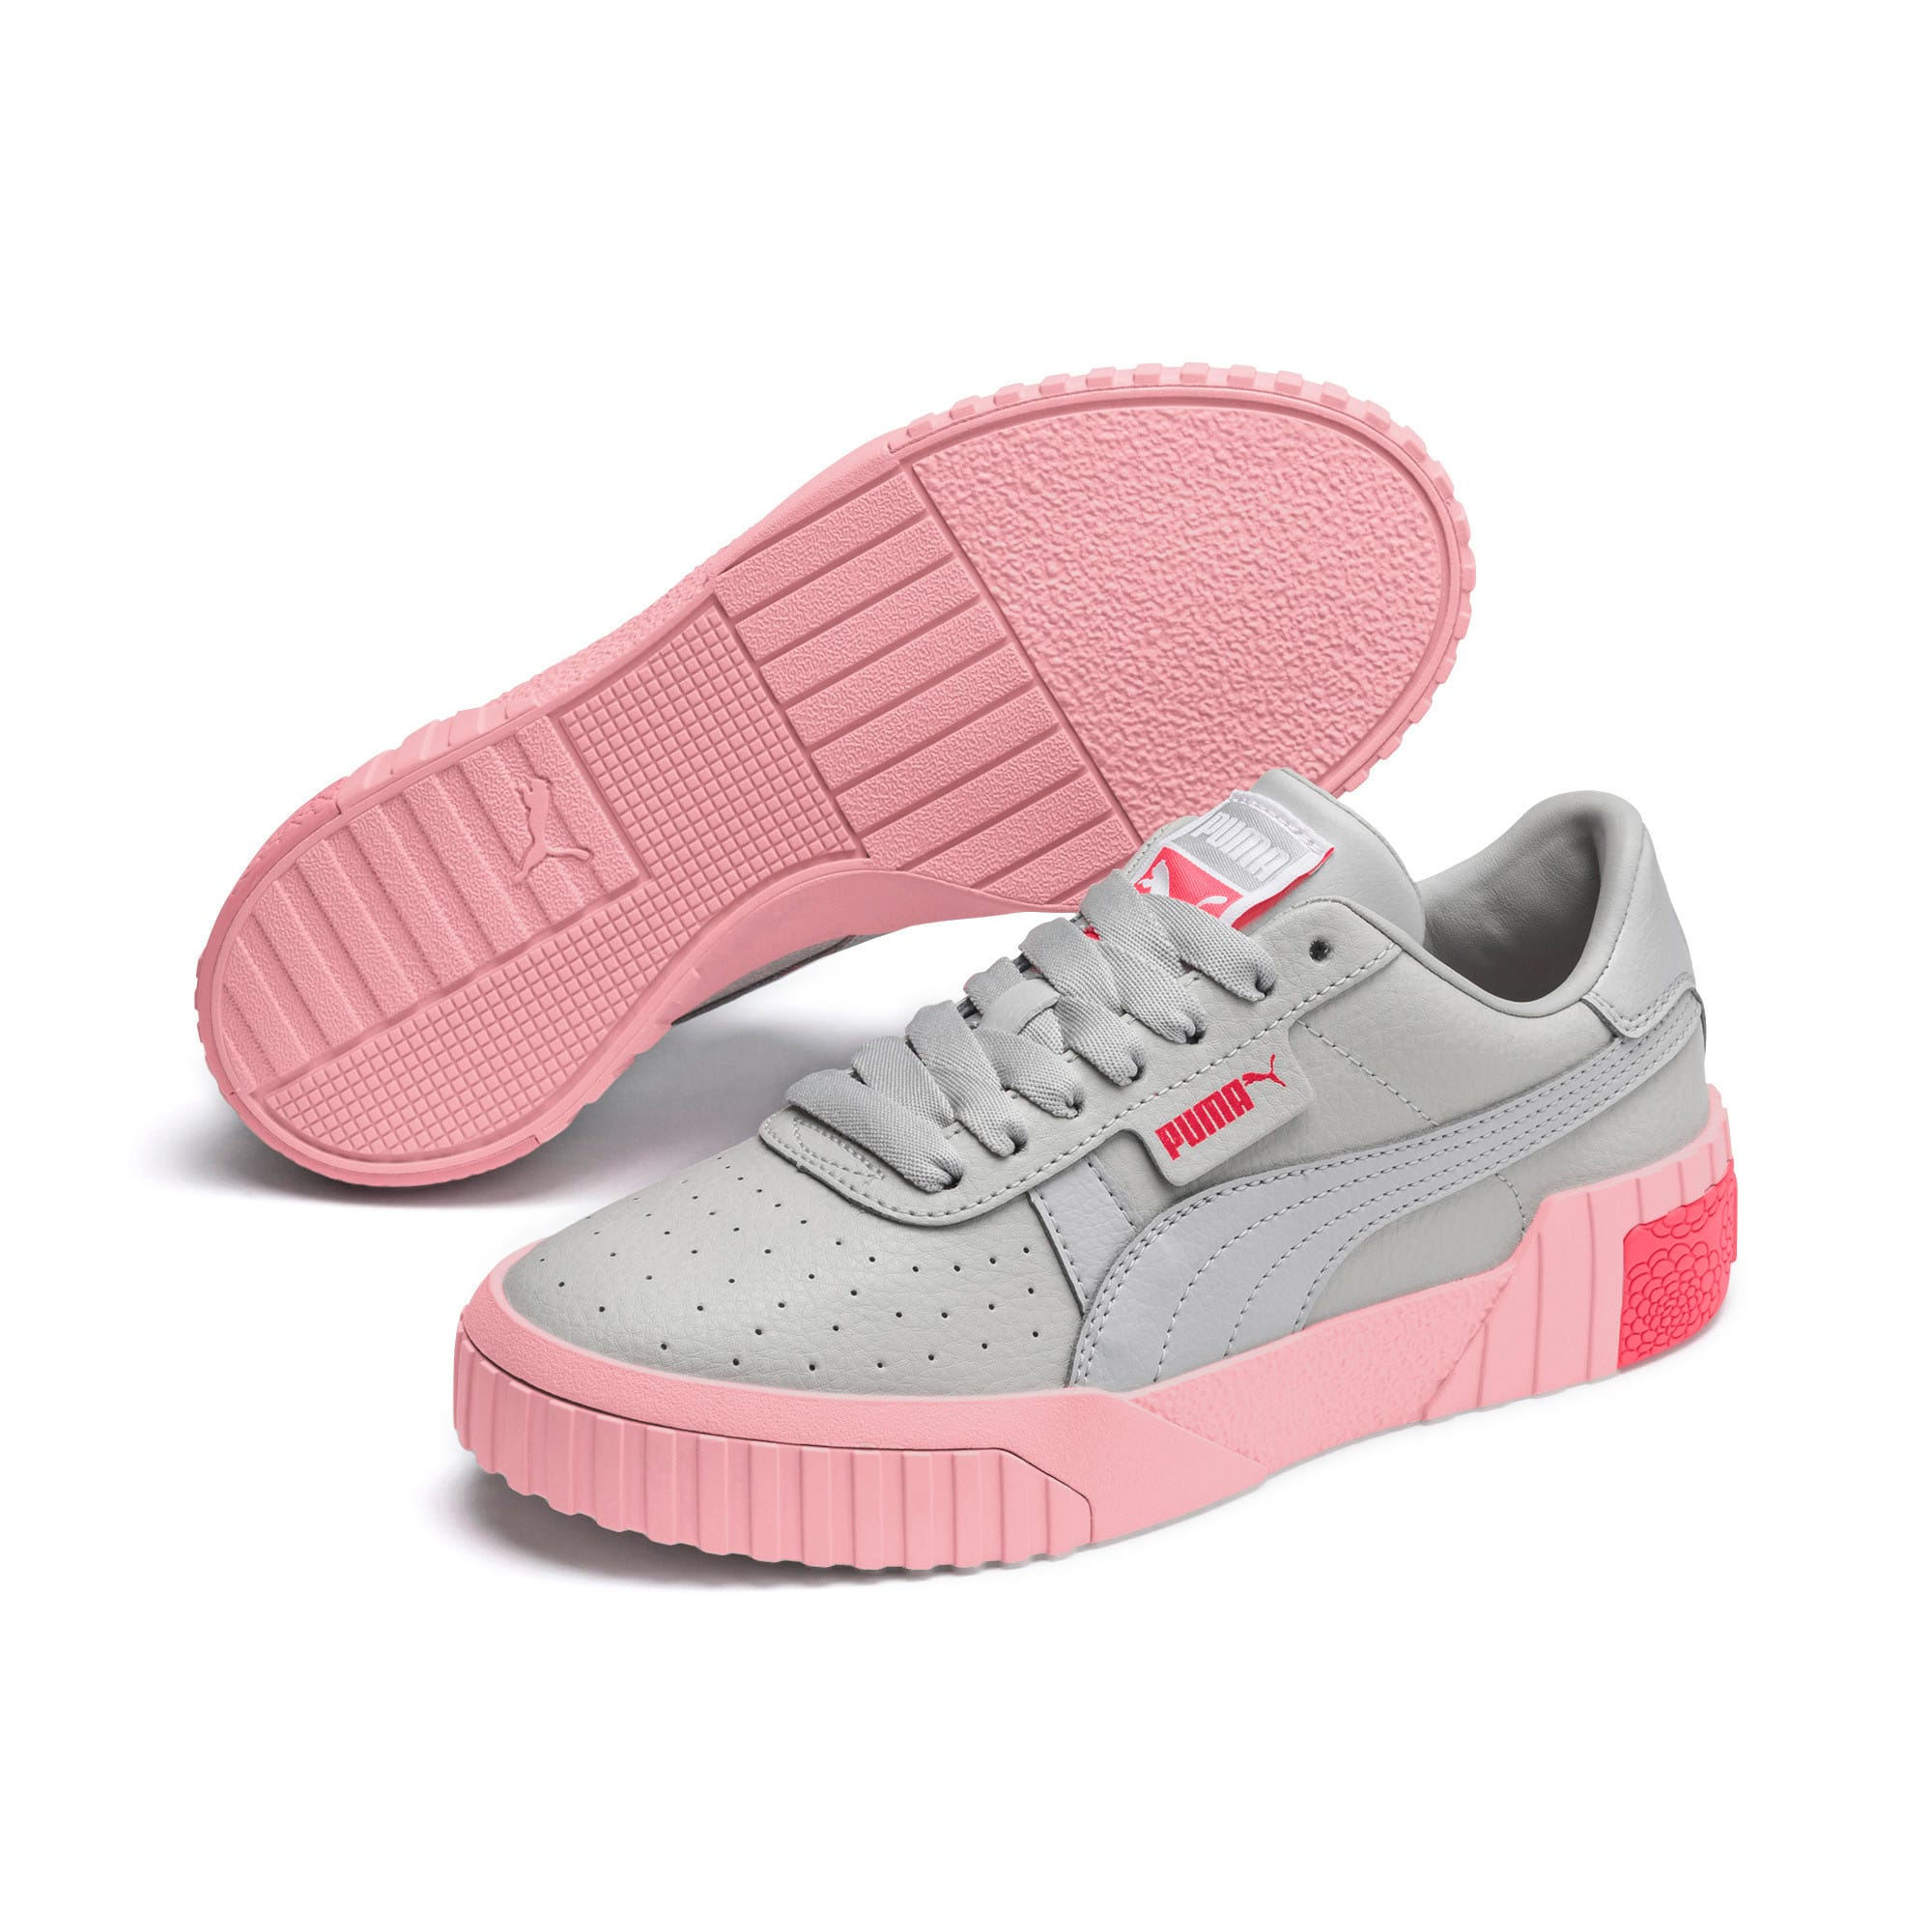 Thumbnail 2 of Cali Youth Trainers, Gray Violet-Calypso Coral, medium